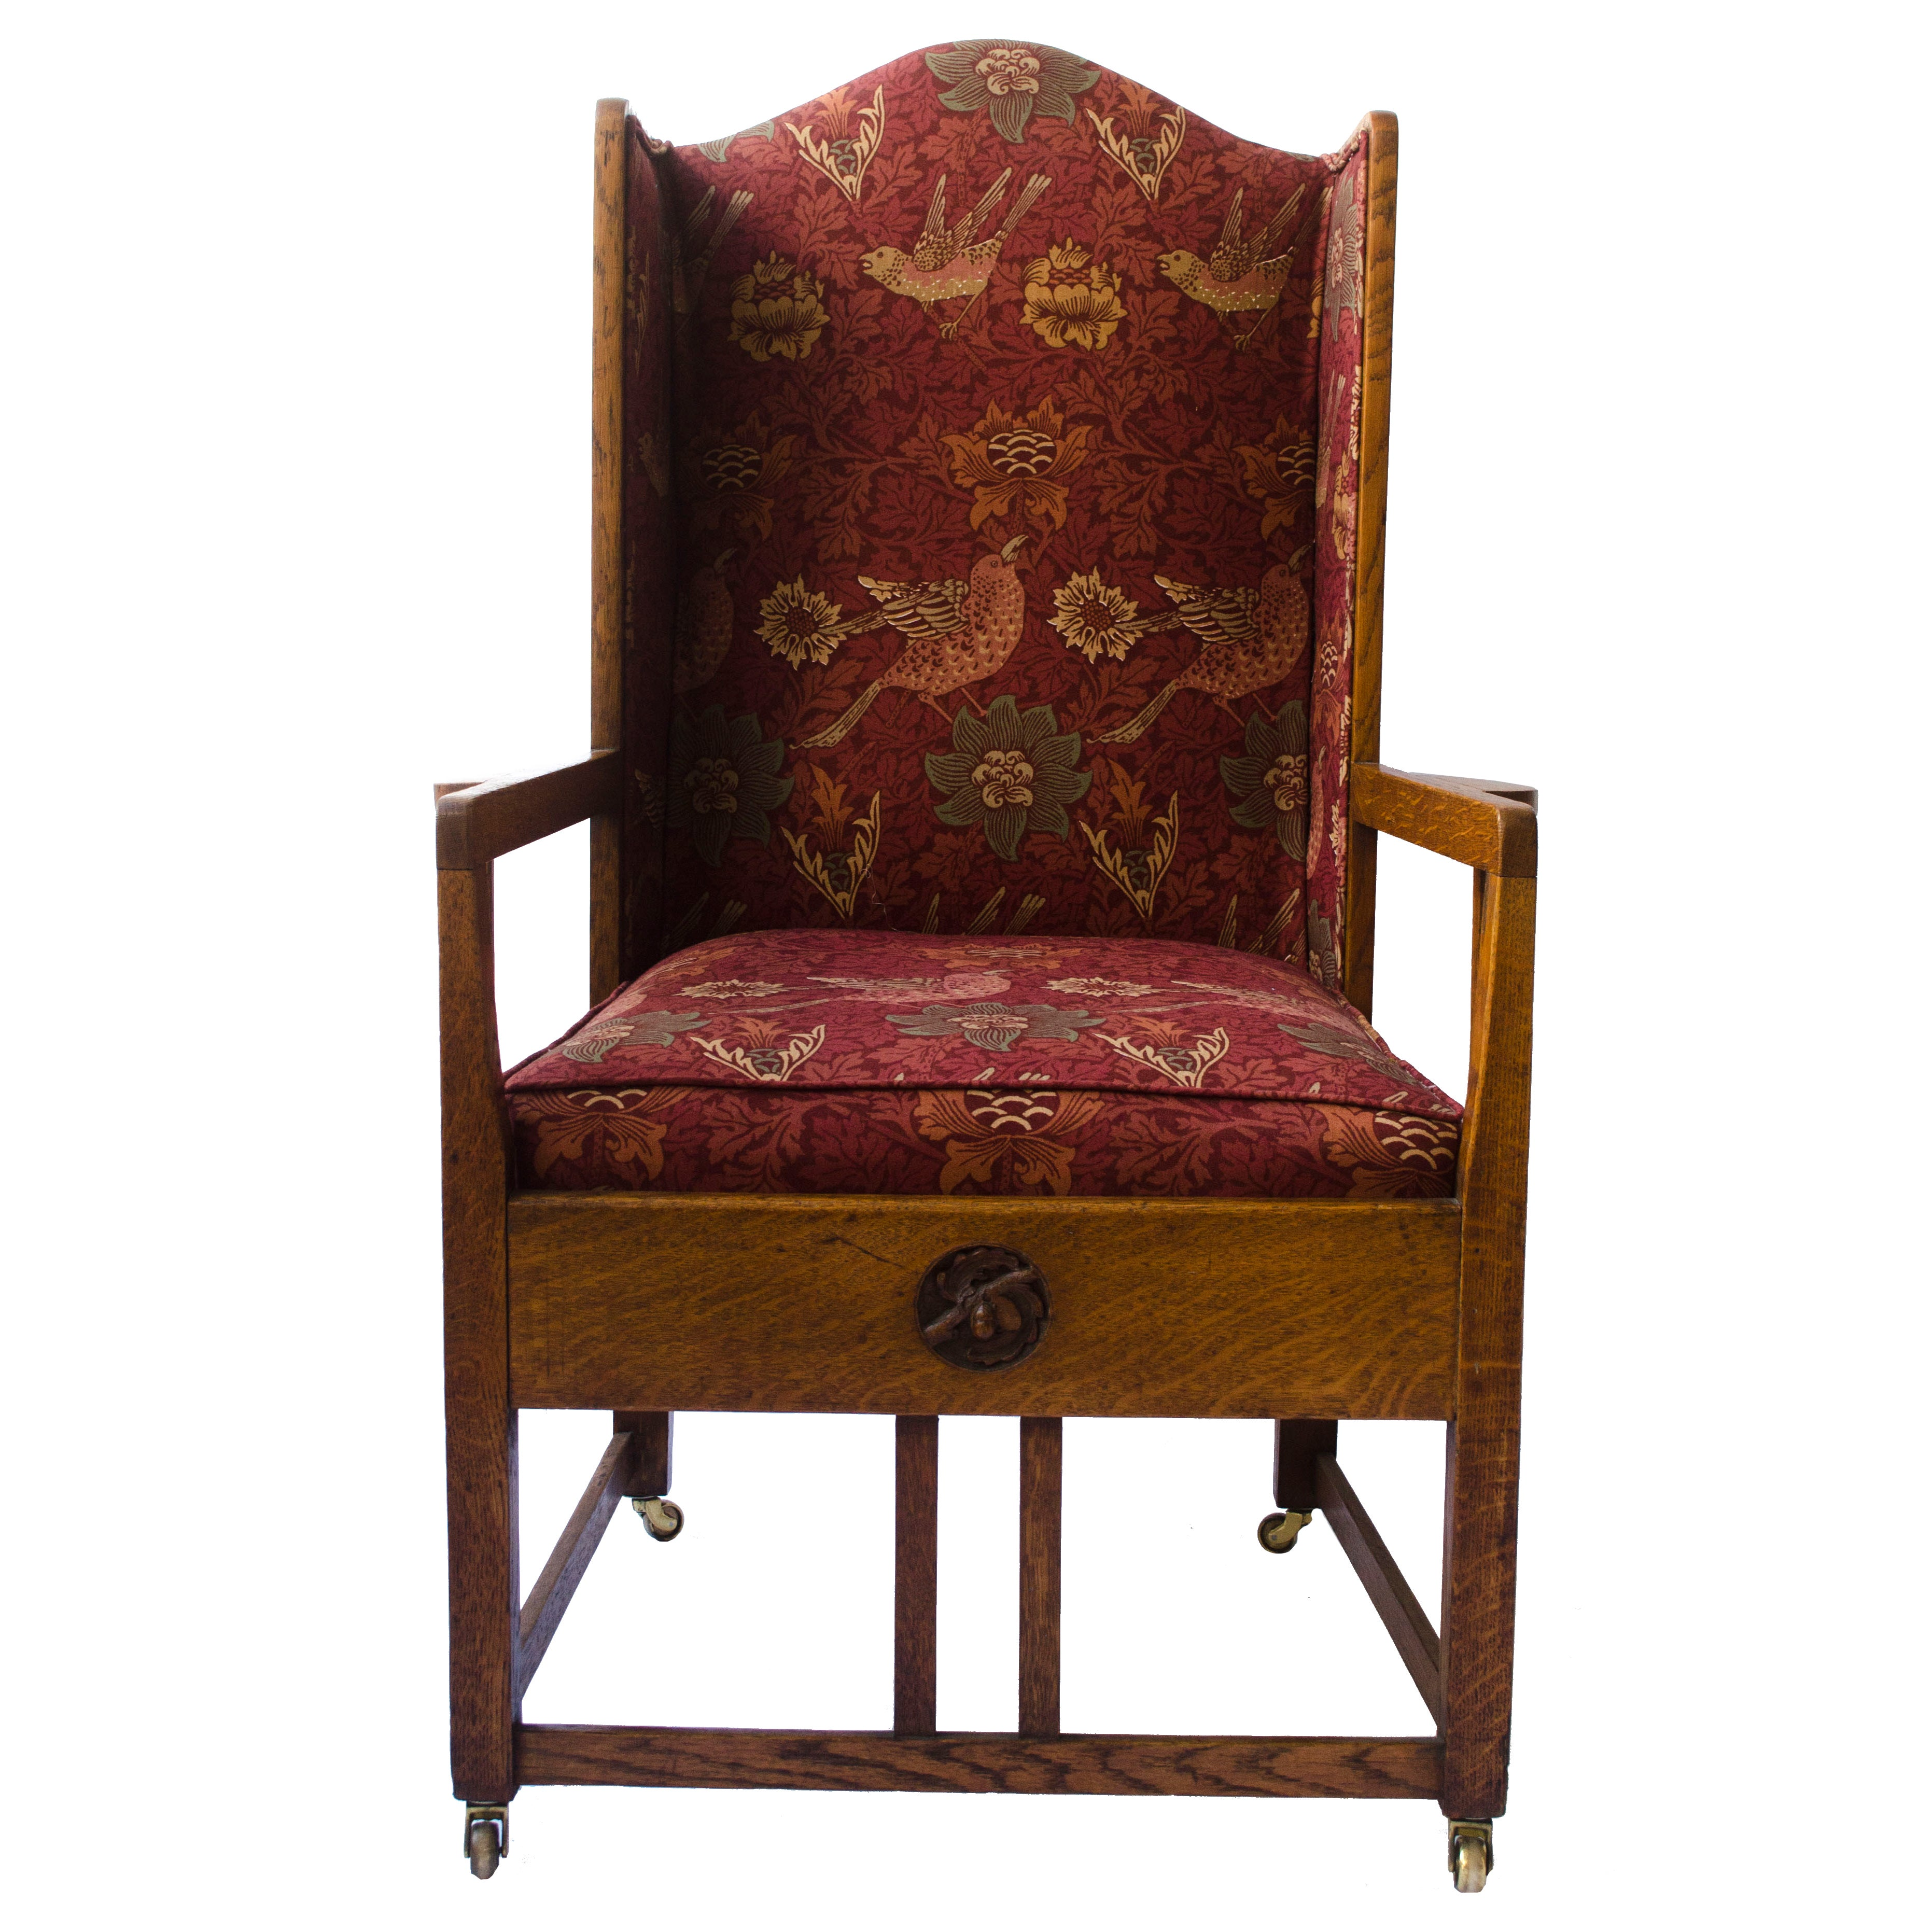 GM Ellwood Attributed Arts and Crafts Armchair with Morris and Co Bird Fabric